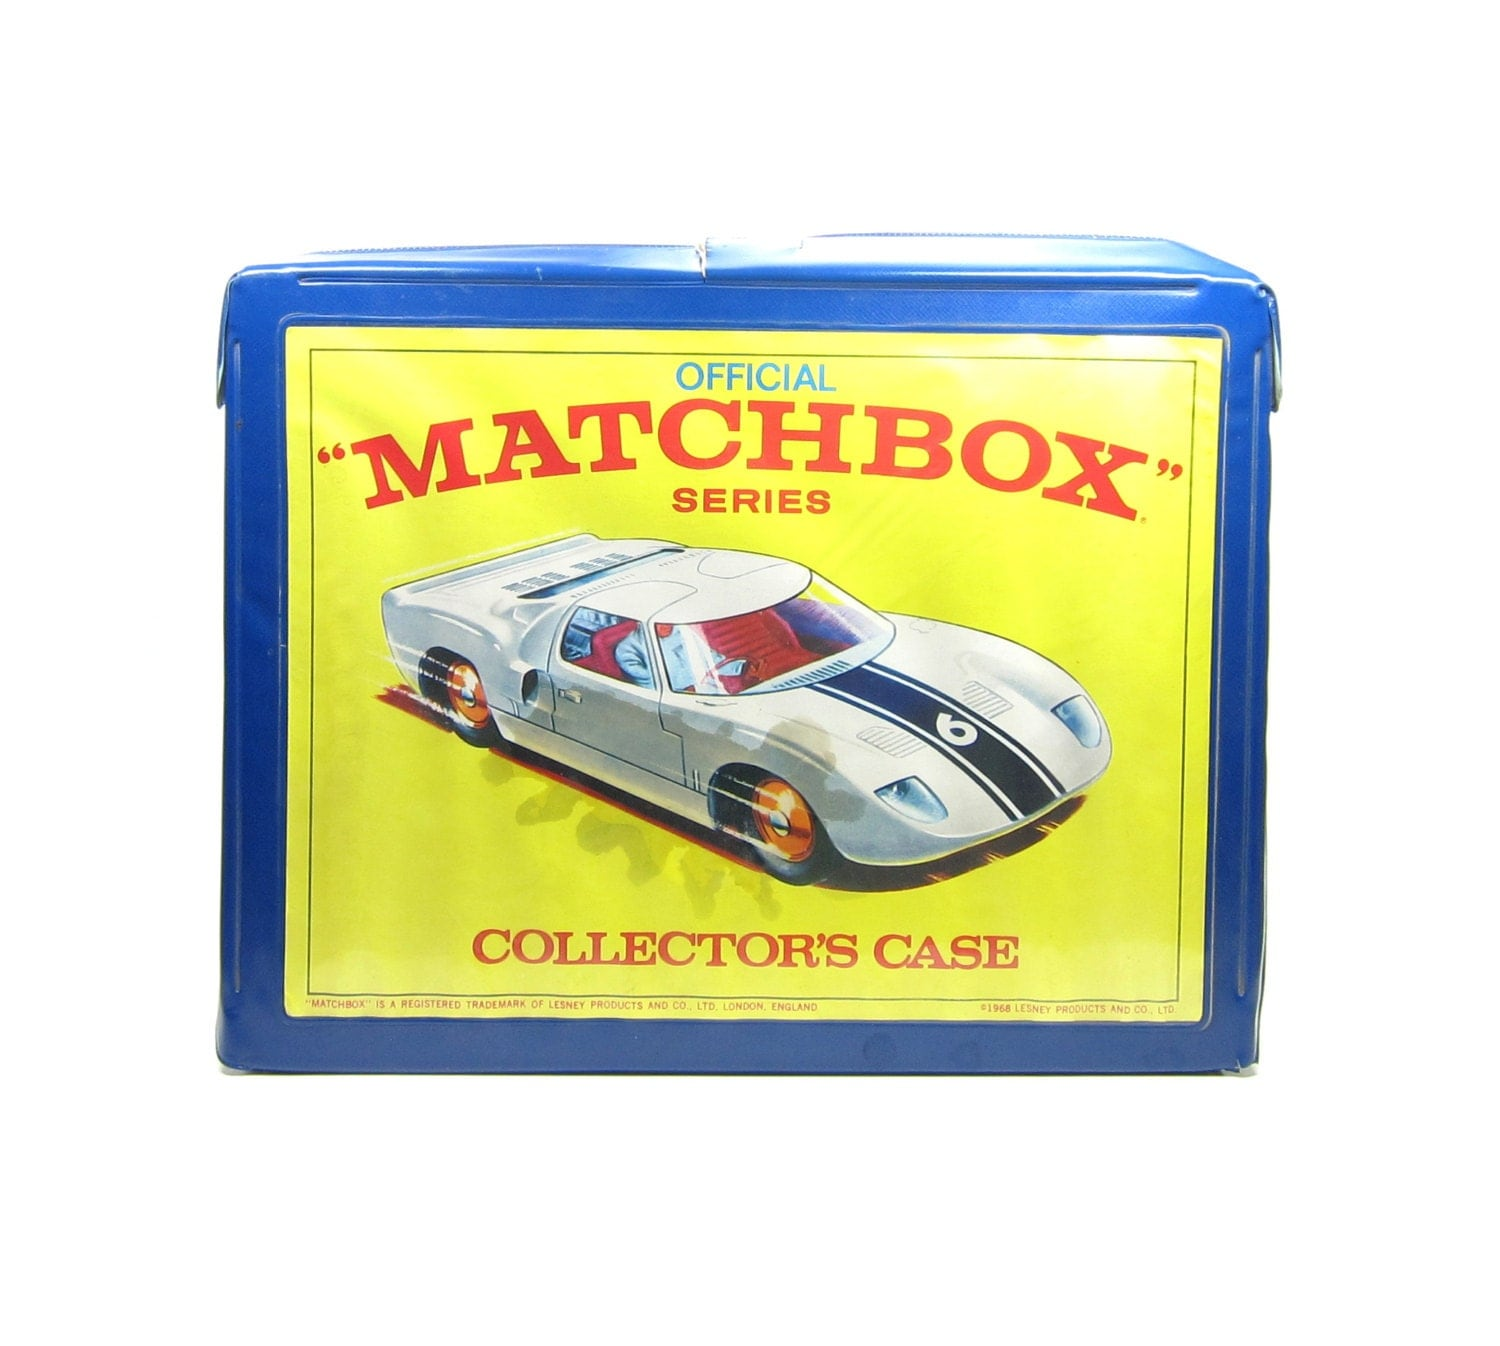 Matchbox Collectors Case 1968 Carrying By BrownEyedRoseVintage